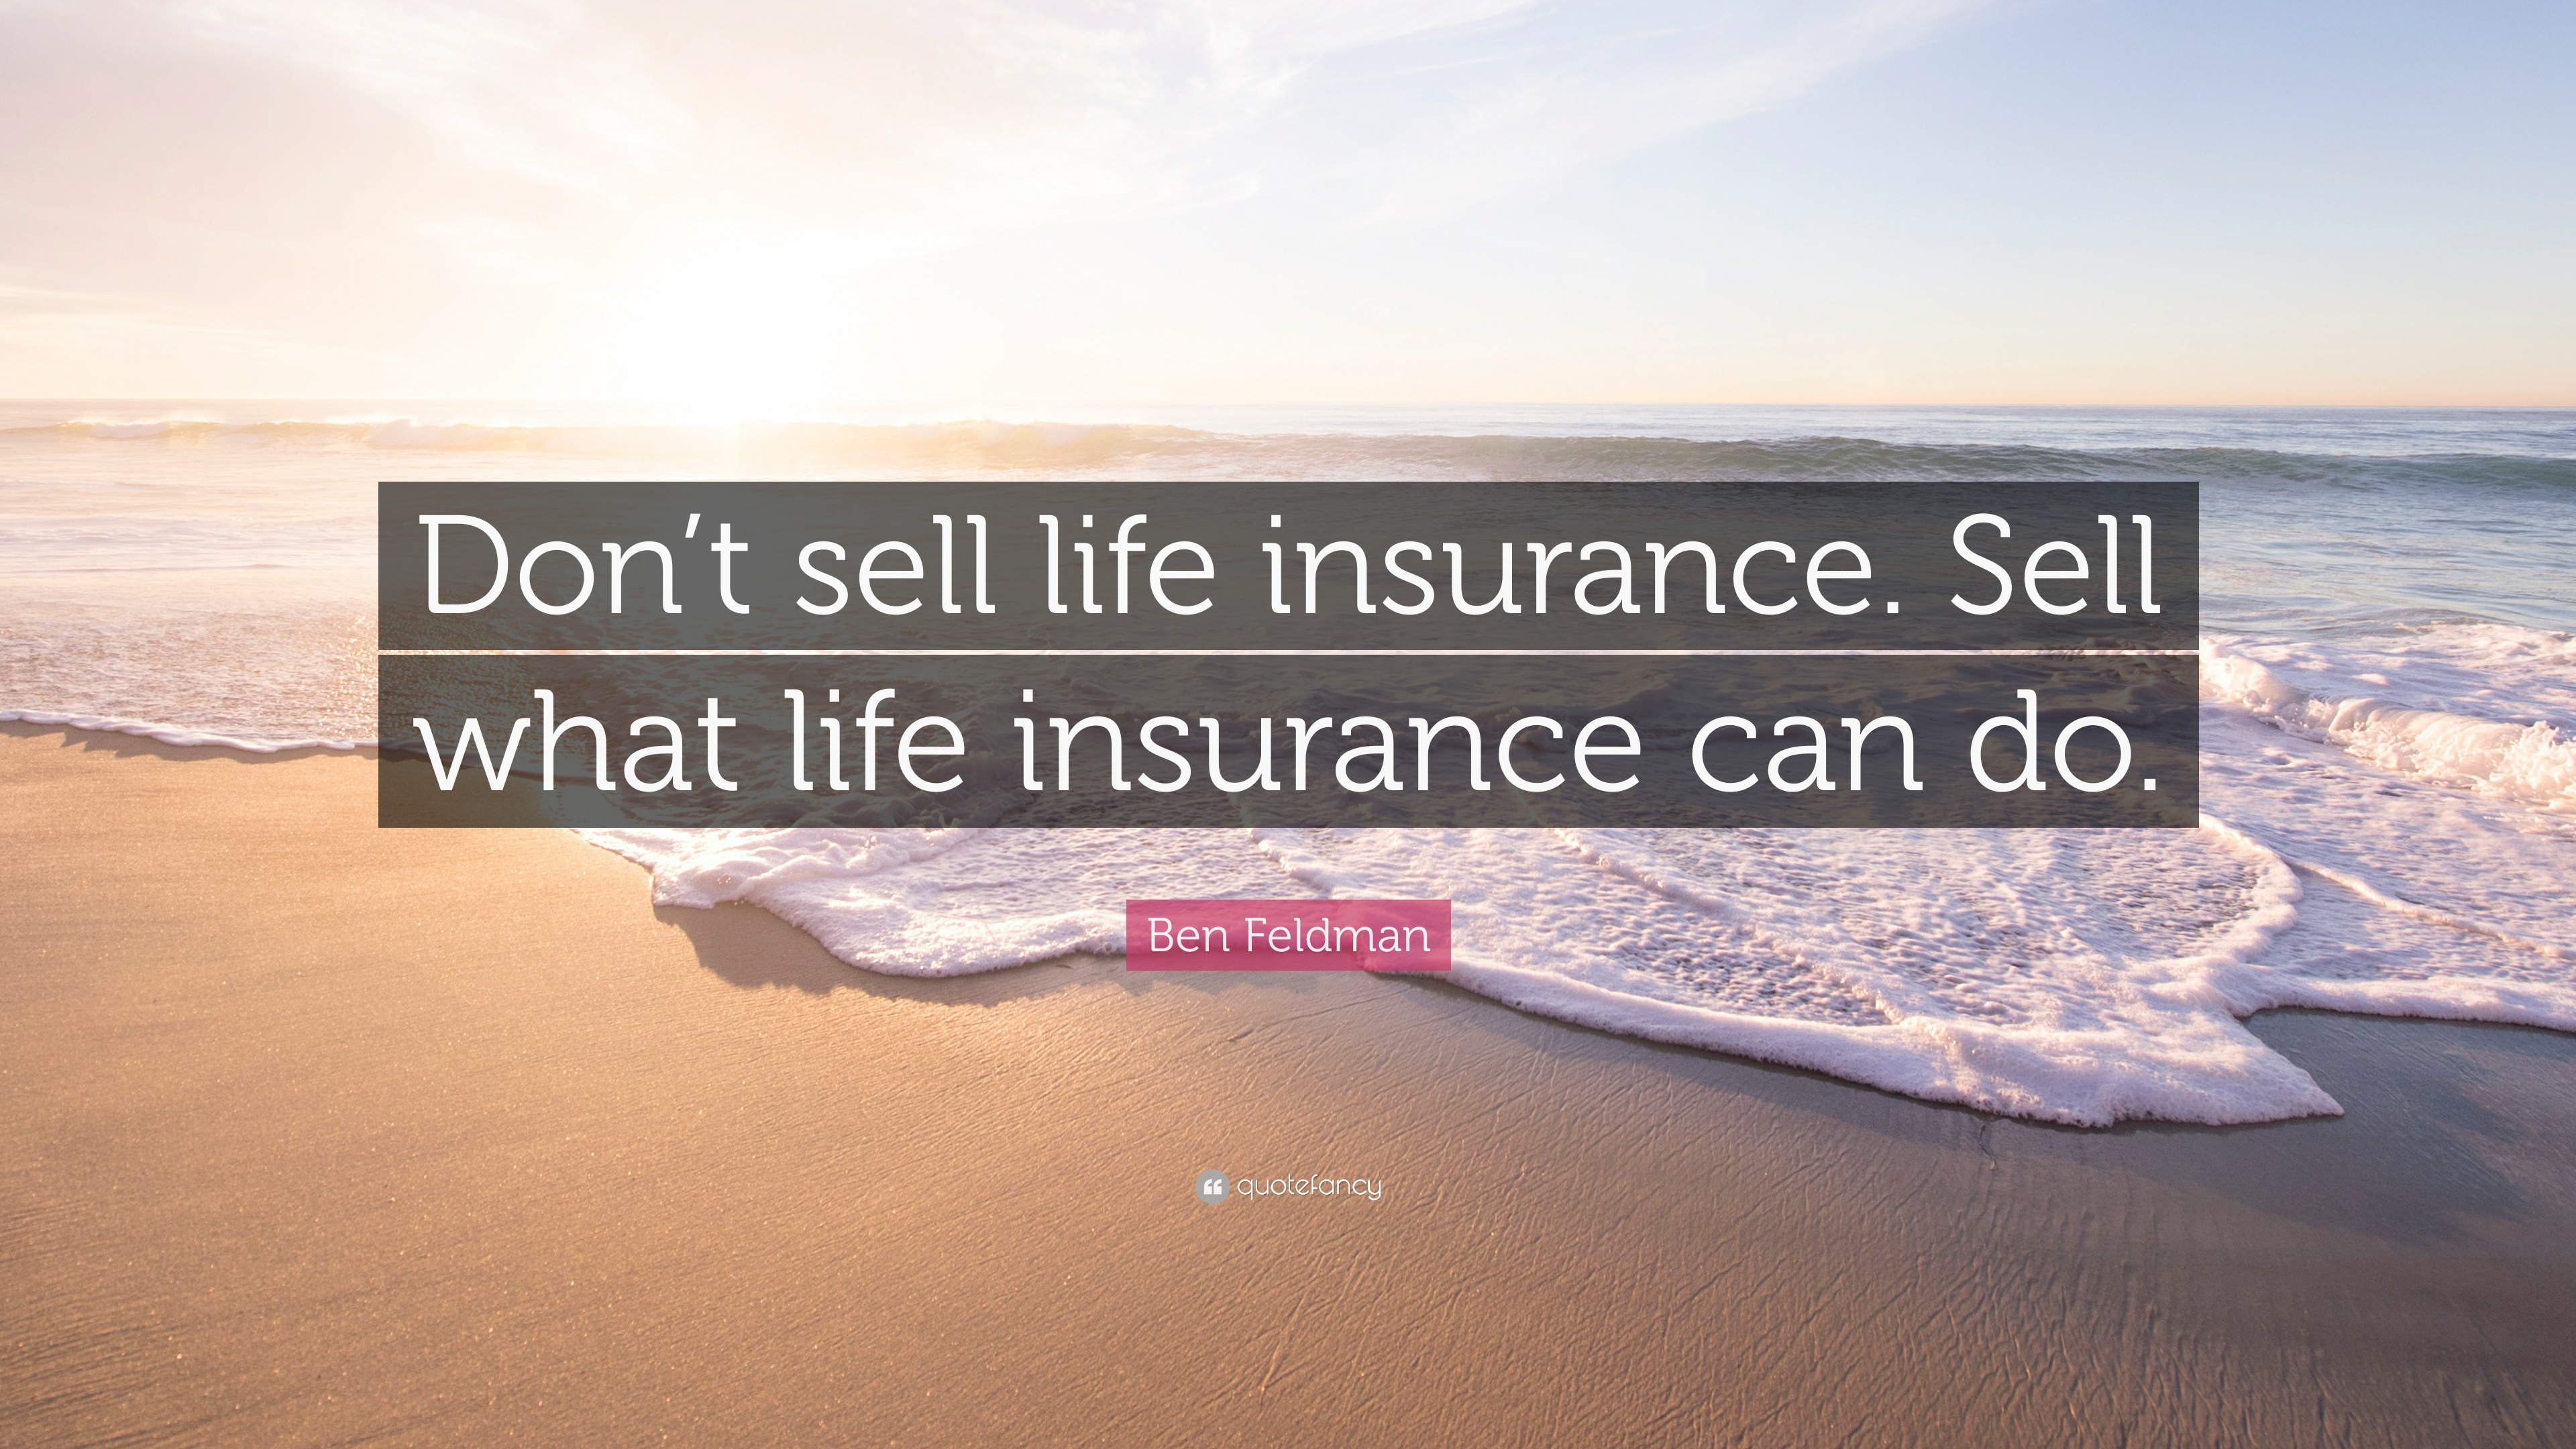 Quotes Life Insurance Ben Feldman Quotes 26 Wallpapers  Quotefancy